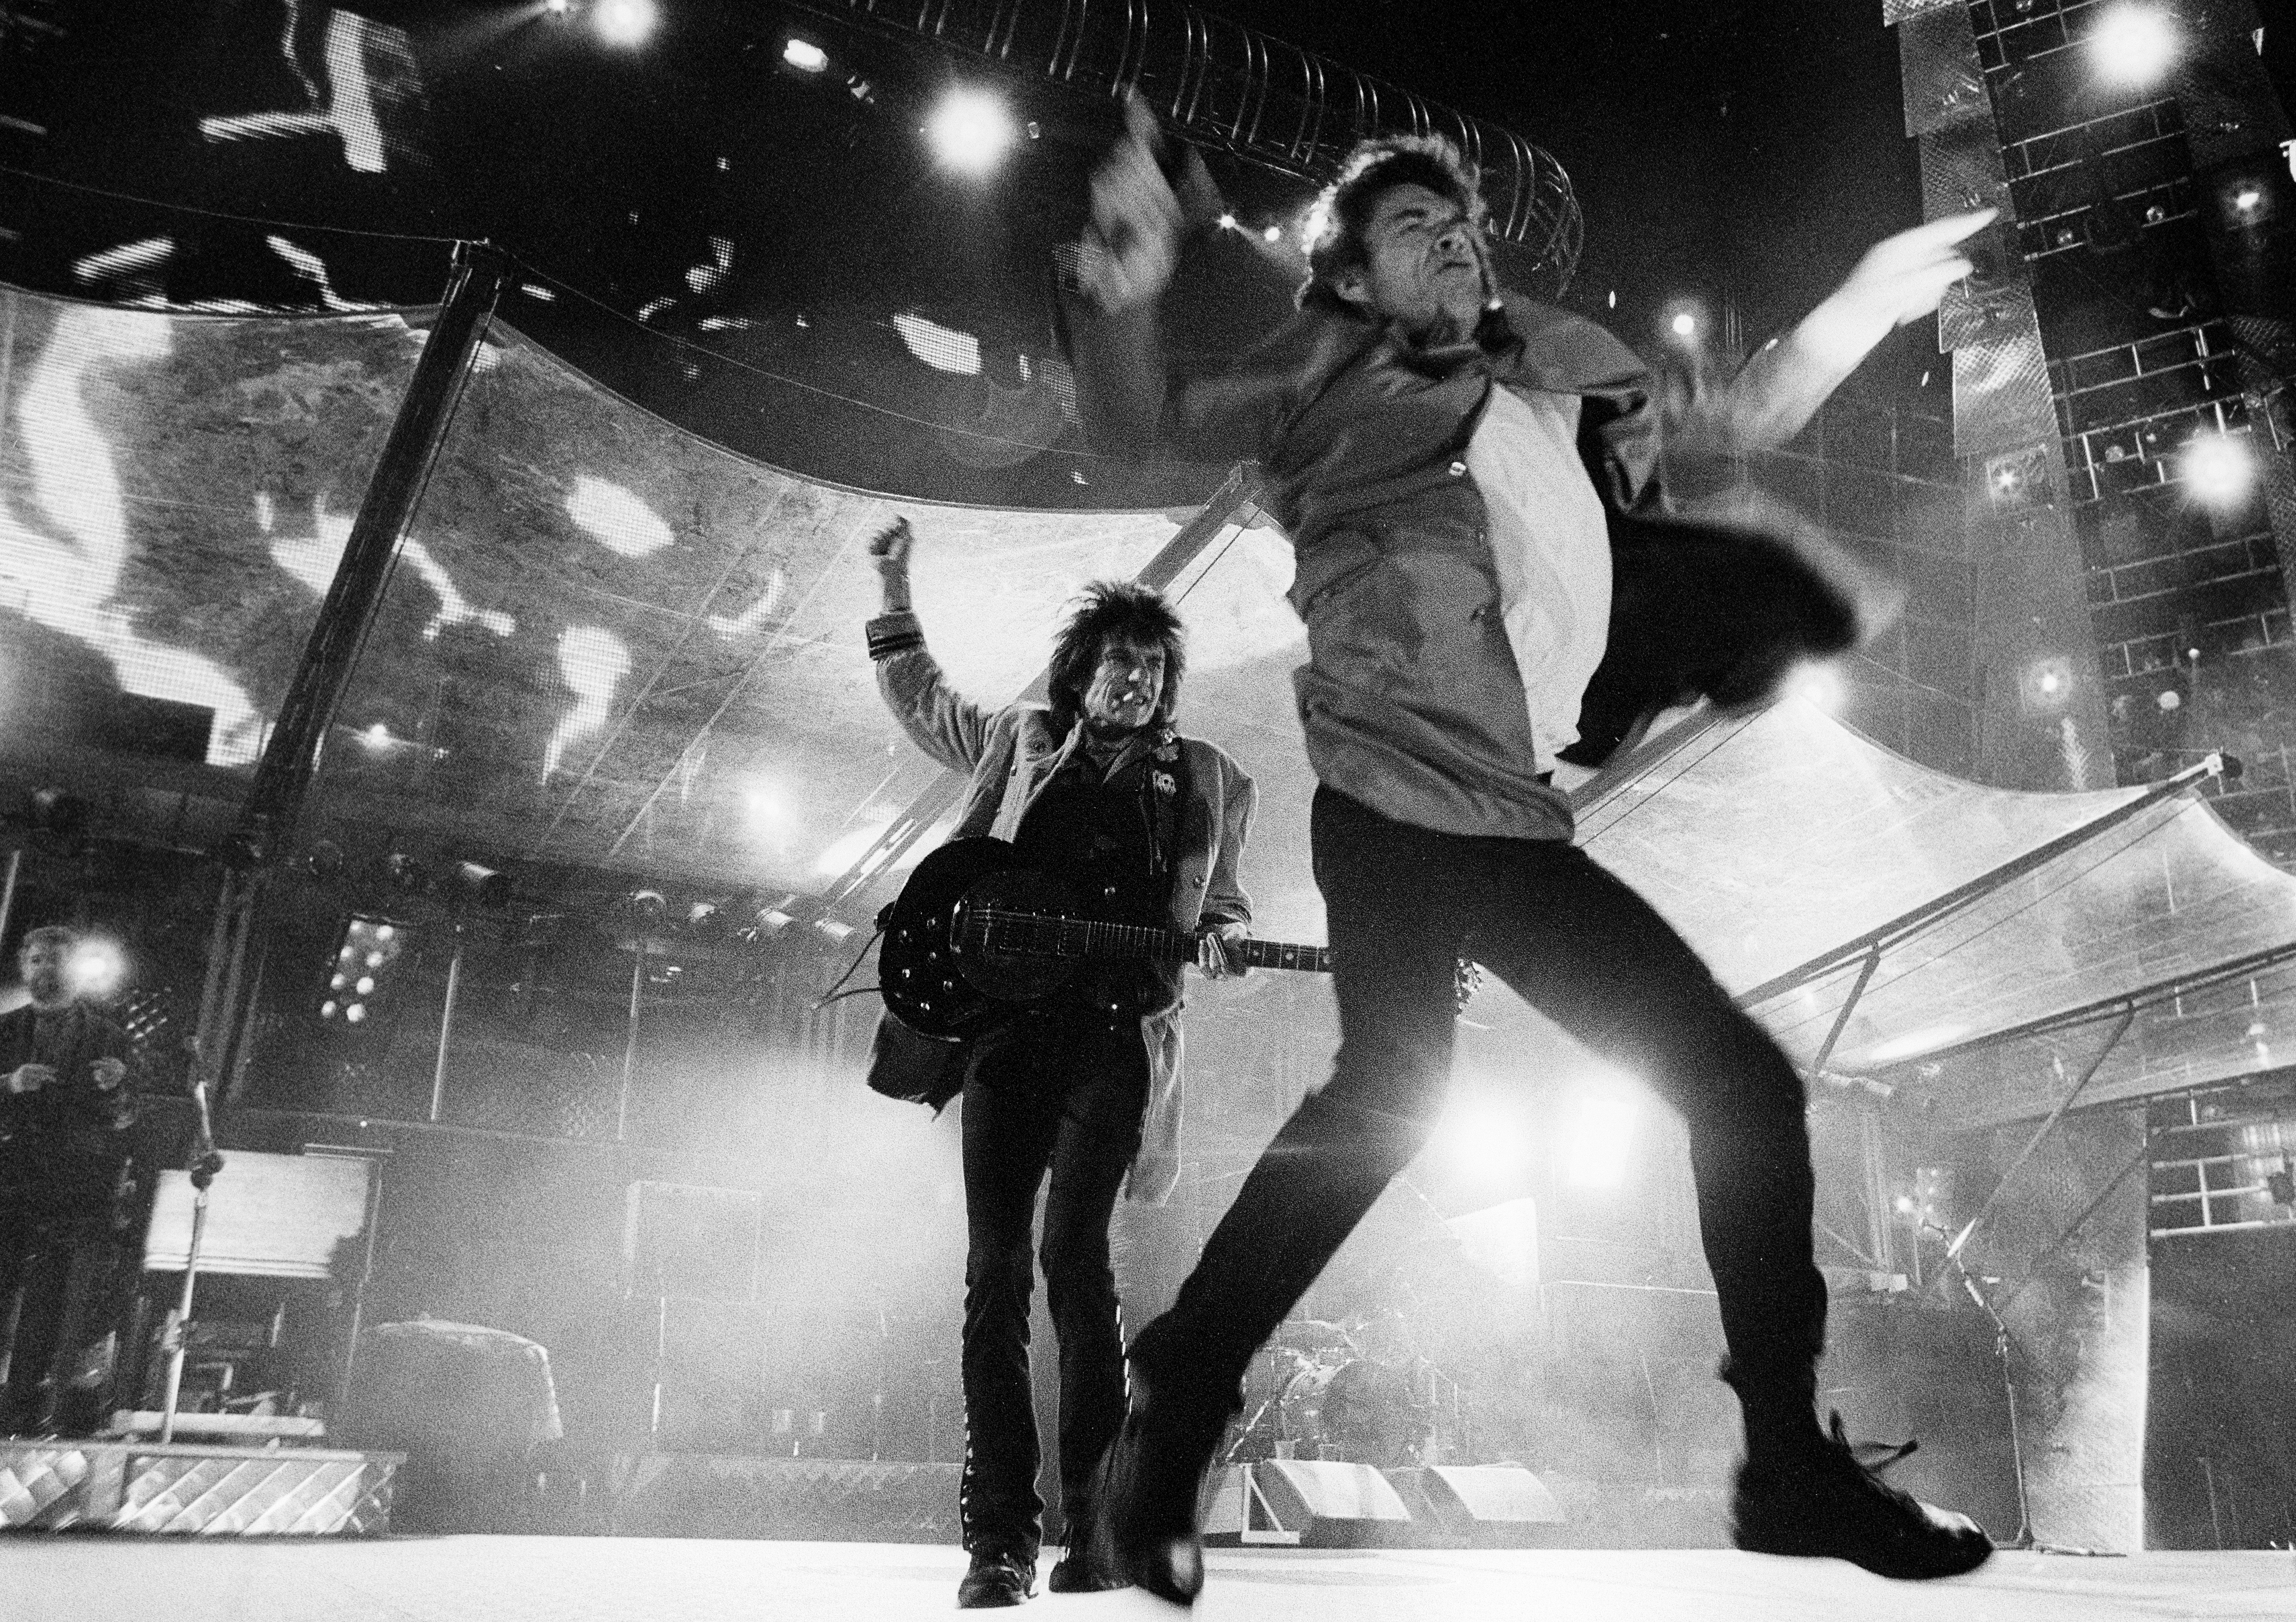 File:The Rolling Stones jpg - Wikimedia Commons